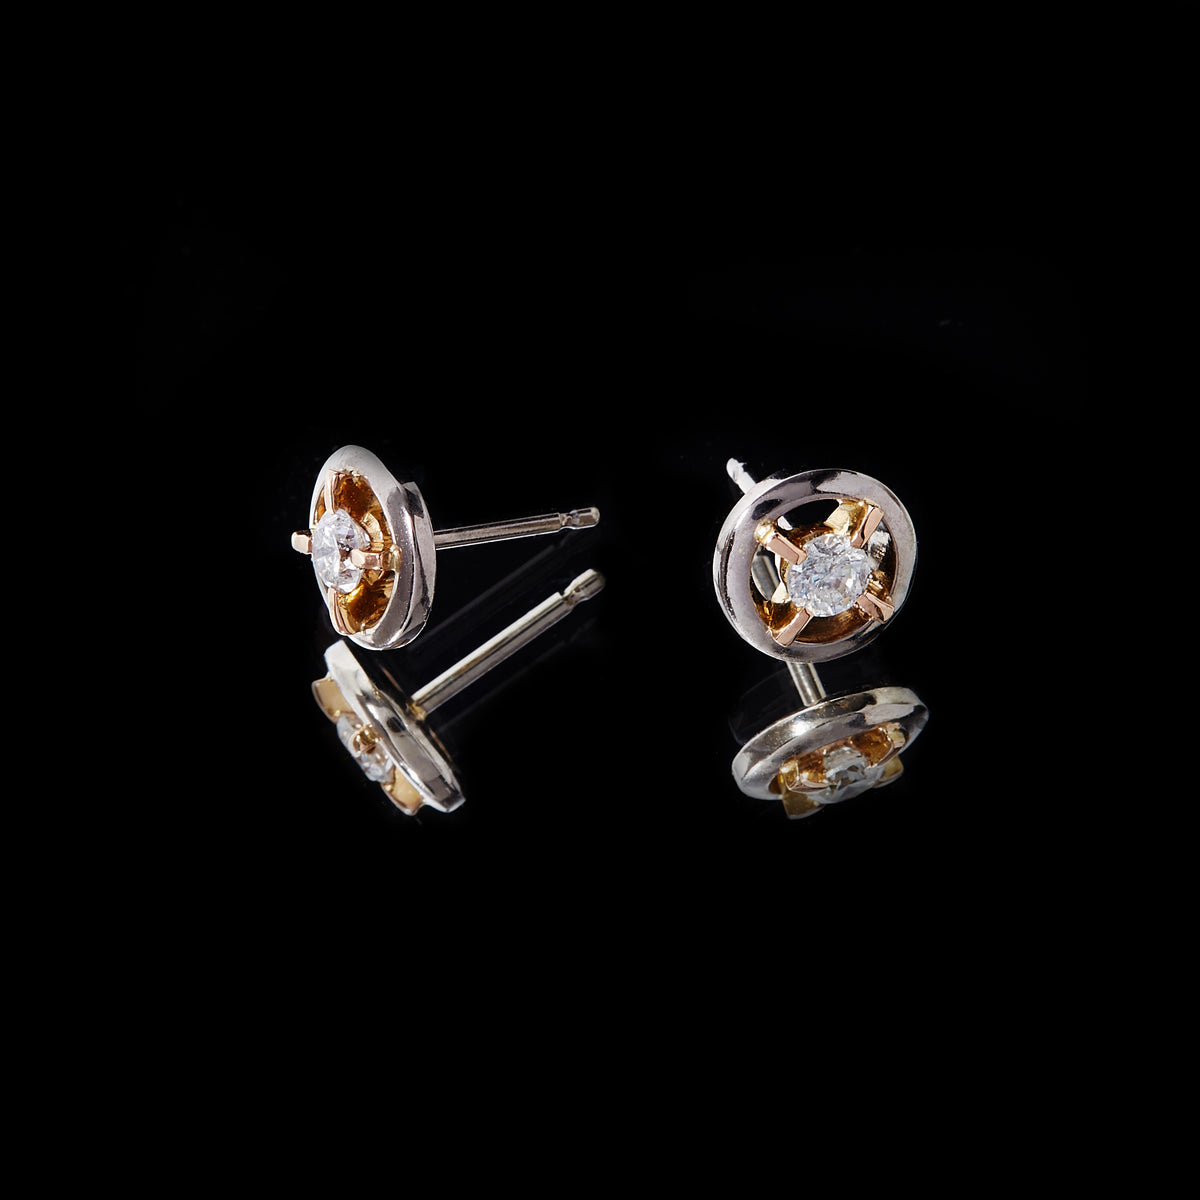 Guy and Max Round Brilliant Cut Diamond, White and Rose Gold Orbital Stud Earrings, picture 2 of 4